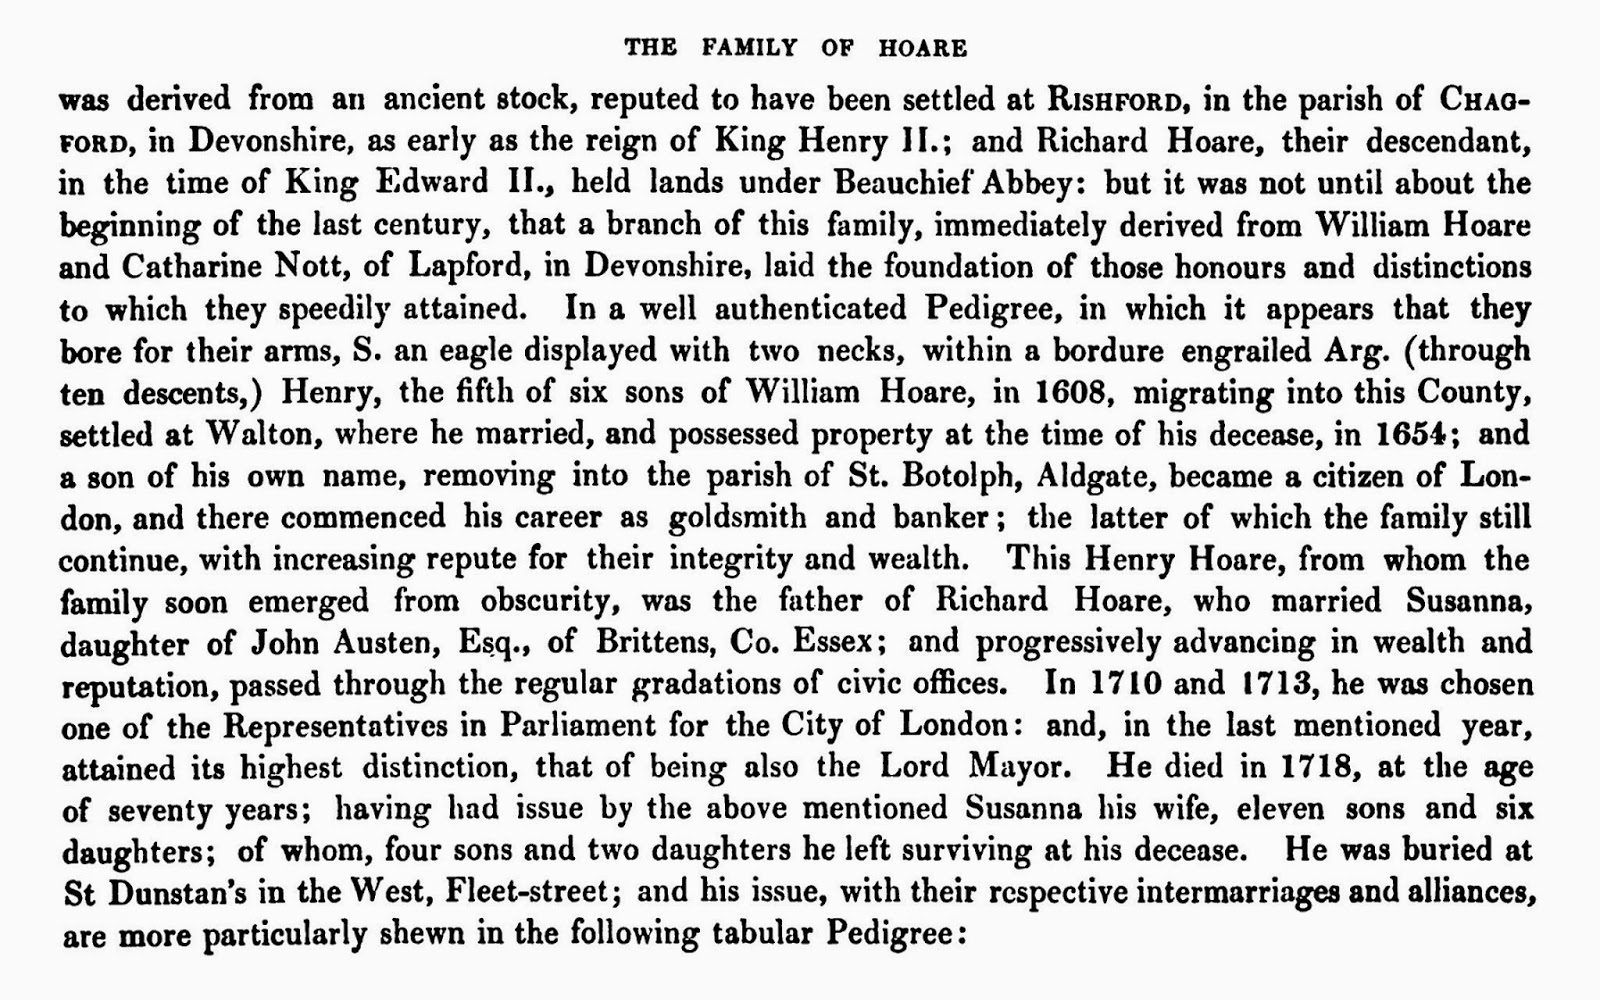 The Family of Hoare